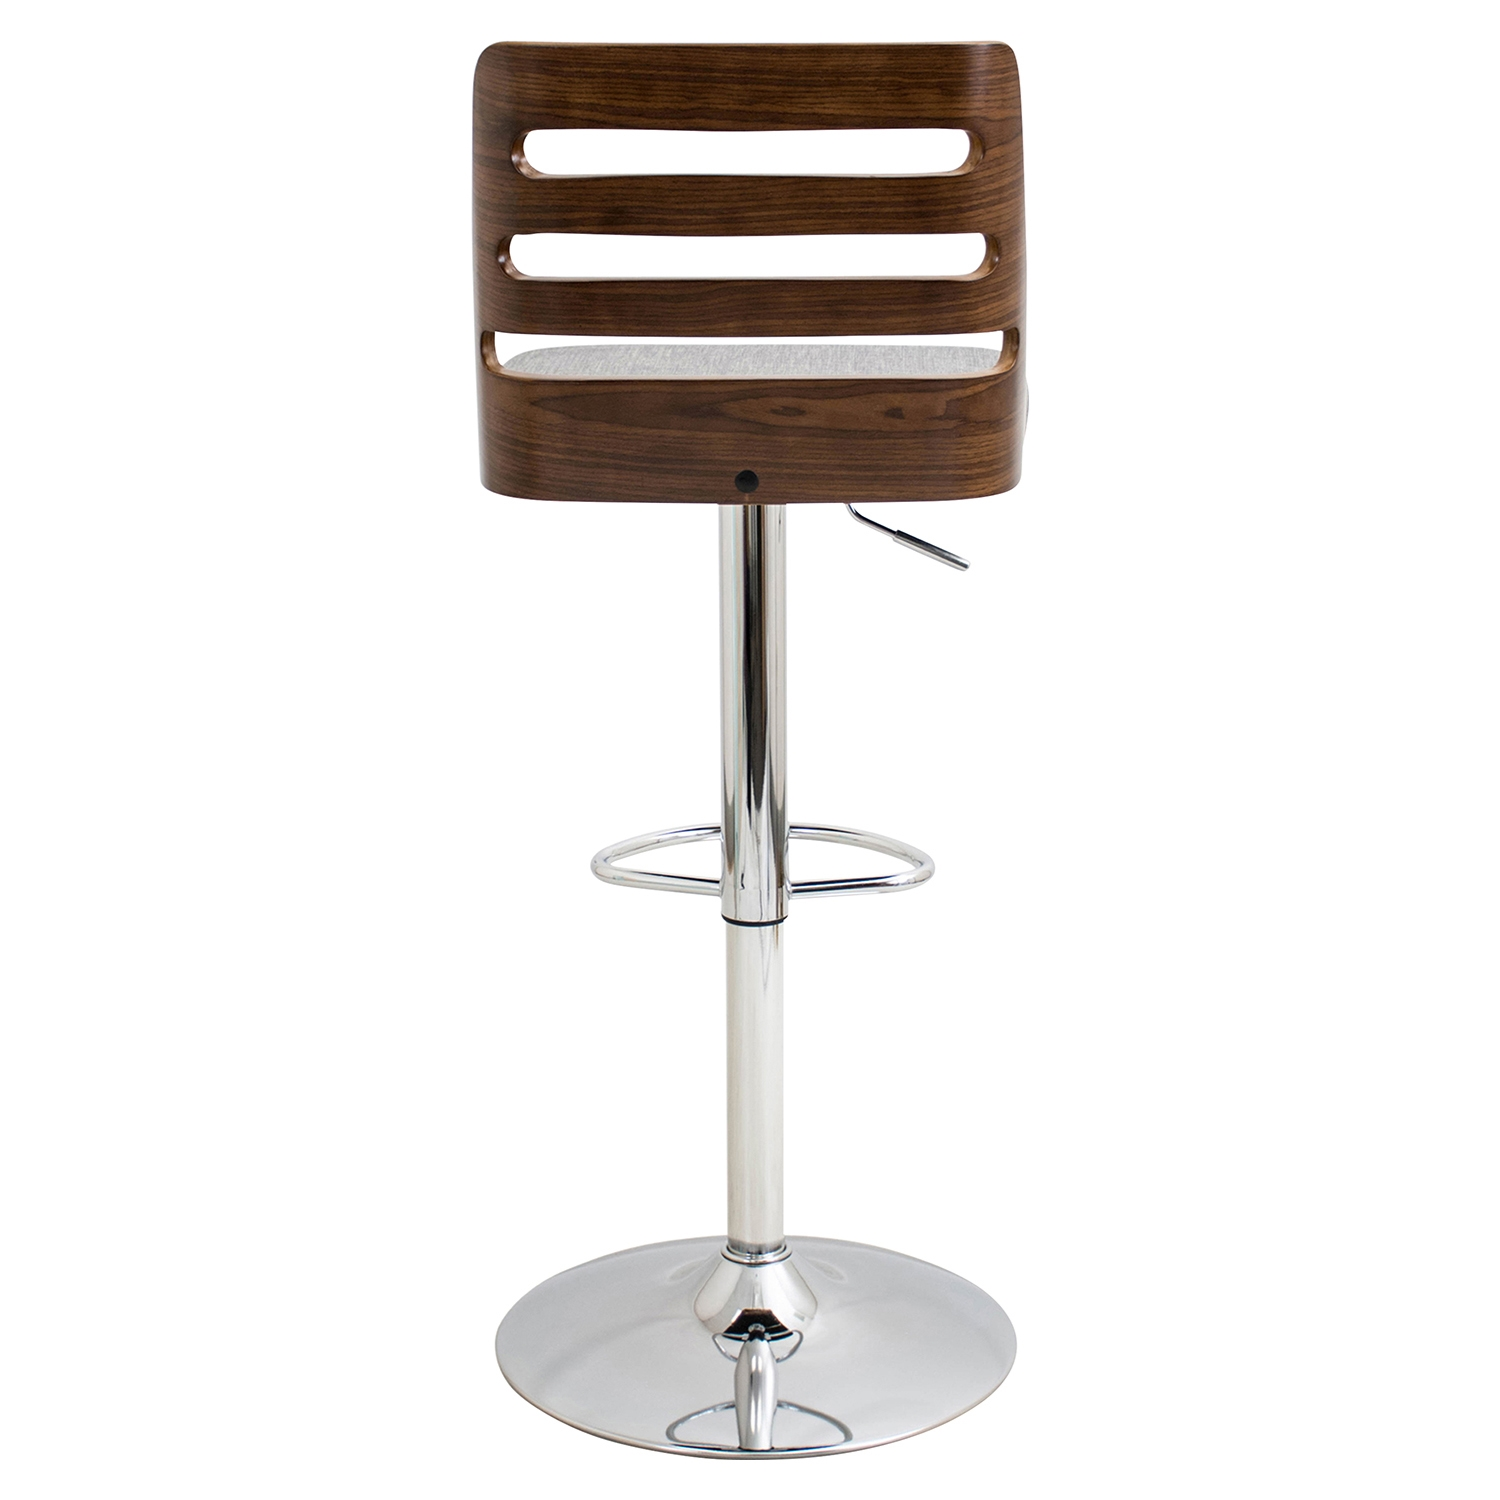 Trevi Height Adjustable Barstool - Swivel, Walnut, Blue - LMS-BS-TRV-WL-GY